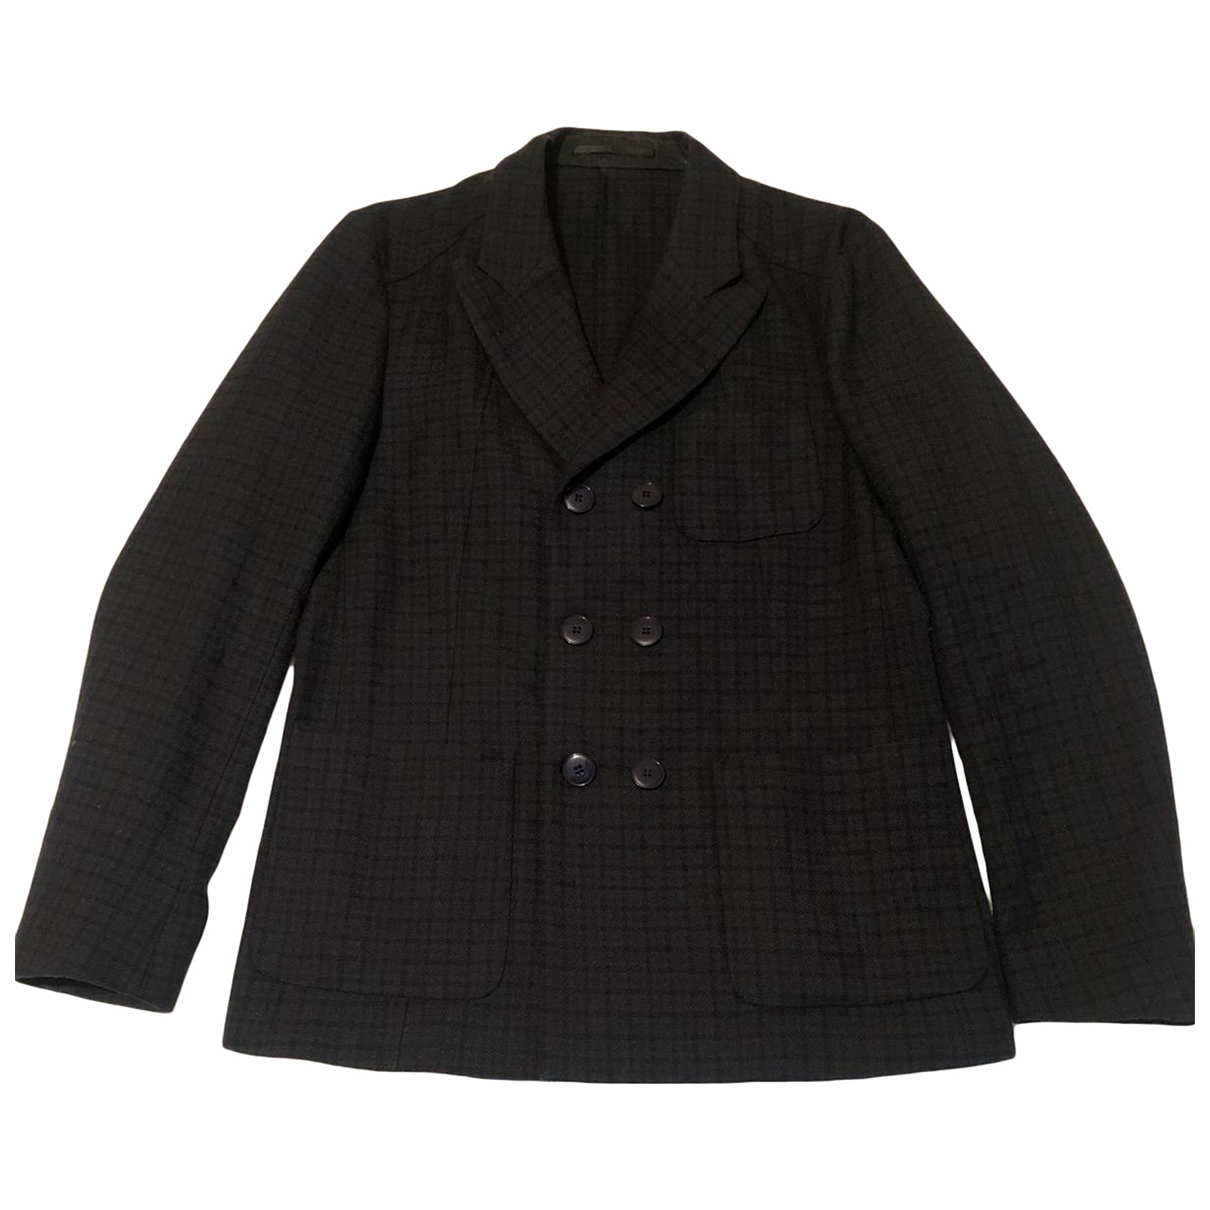 Mauro Grifoni \N Anthracite Wool jacket  for Men 50 IT